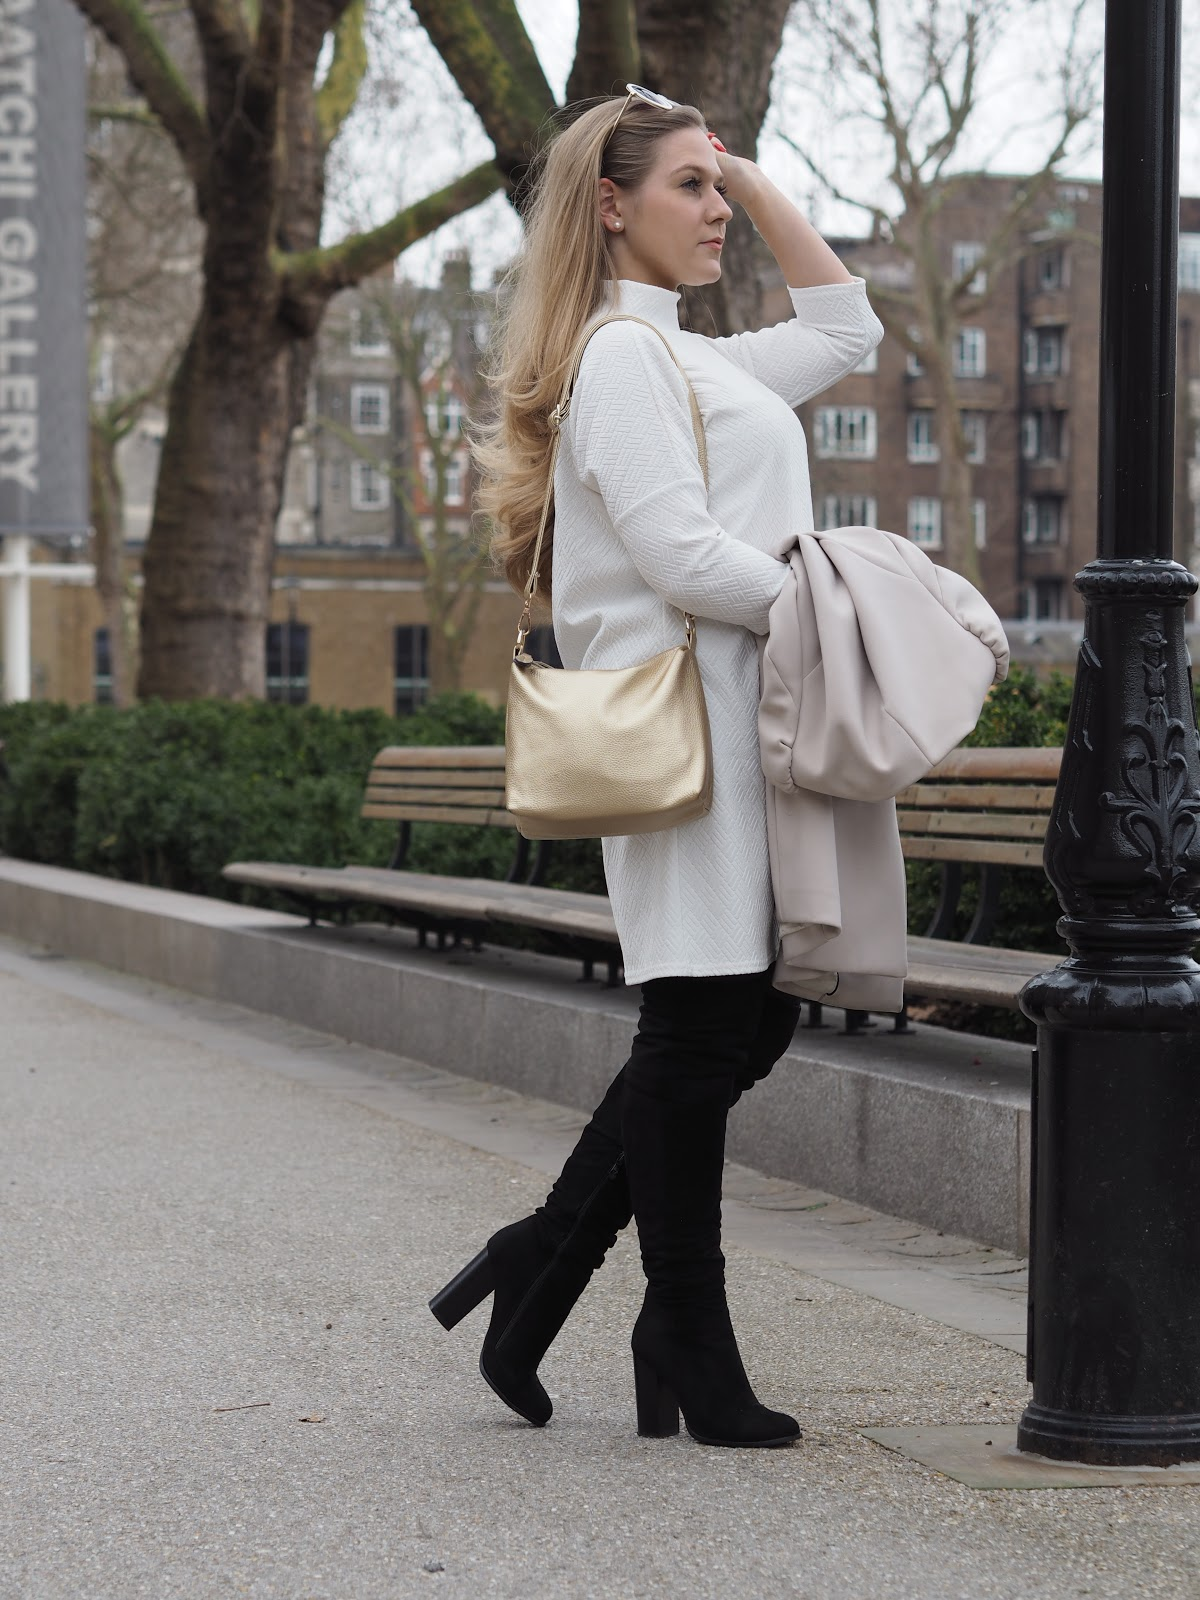 Blonde girl wearing white dress and black thigh high boots in Chelsea, London